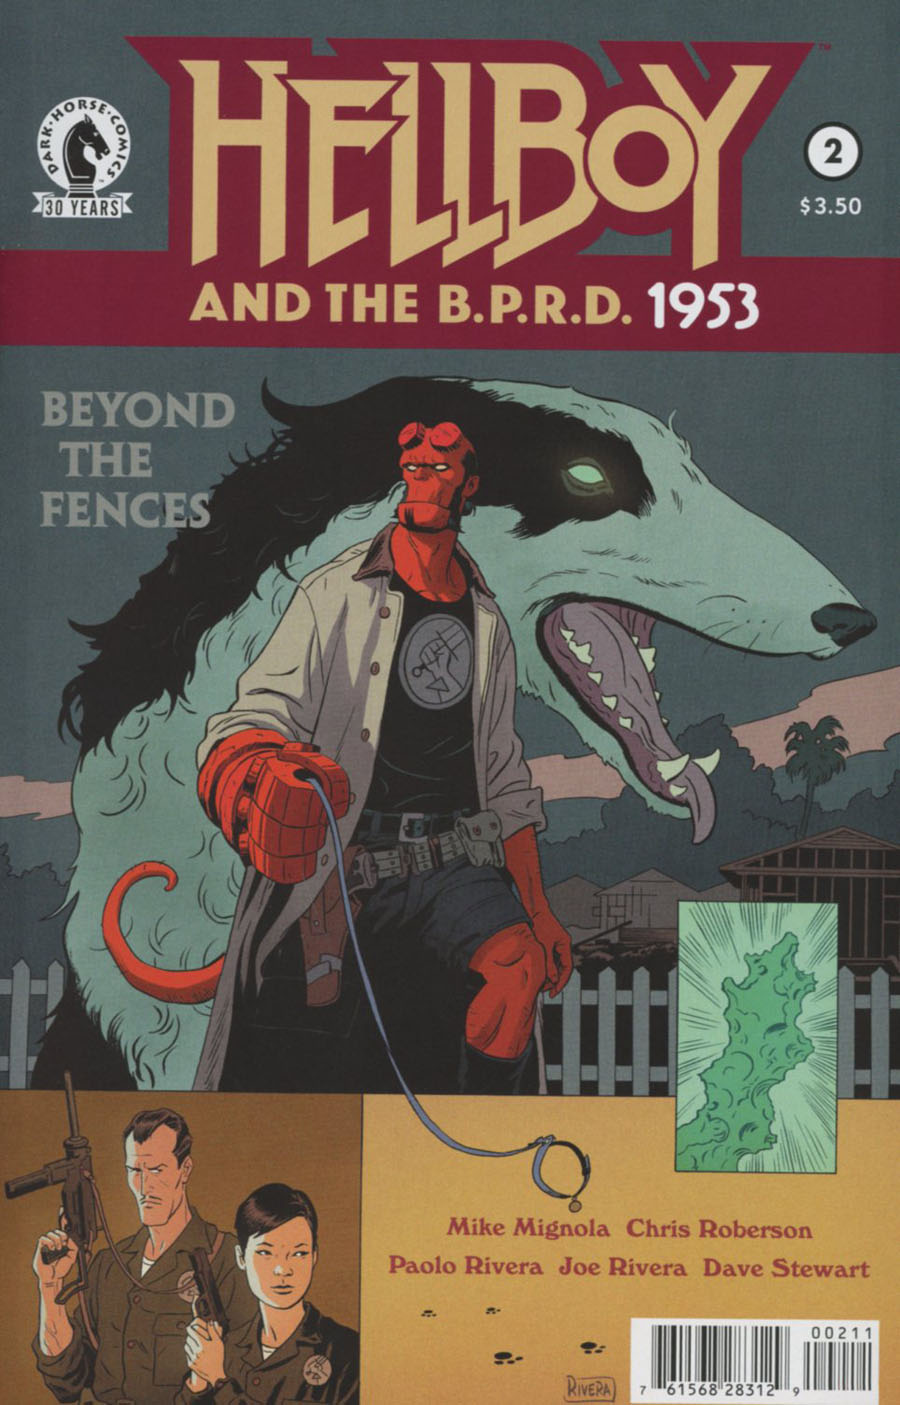 Hellboy And The BPRD 1953 Beyond The Fences #2